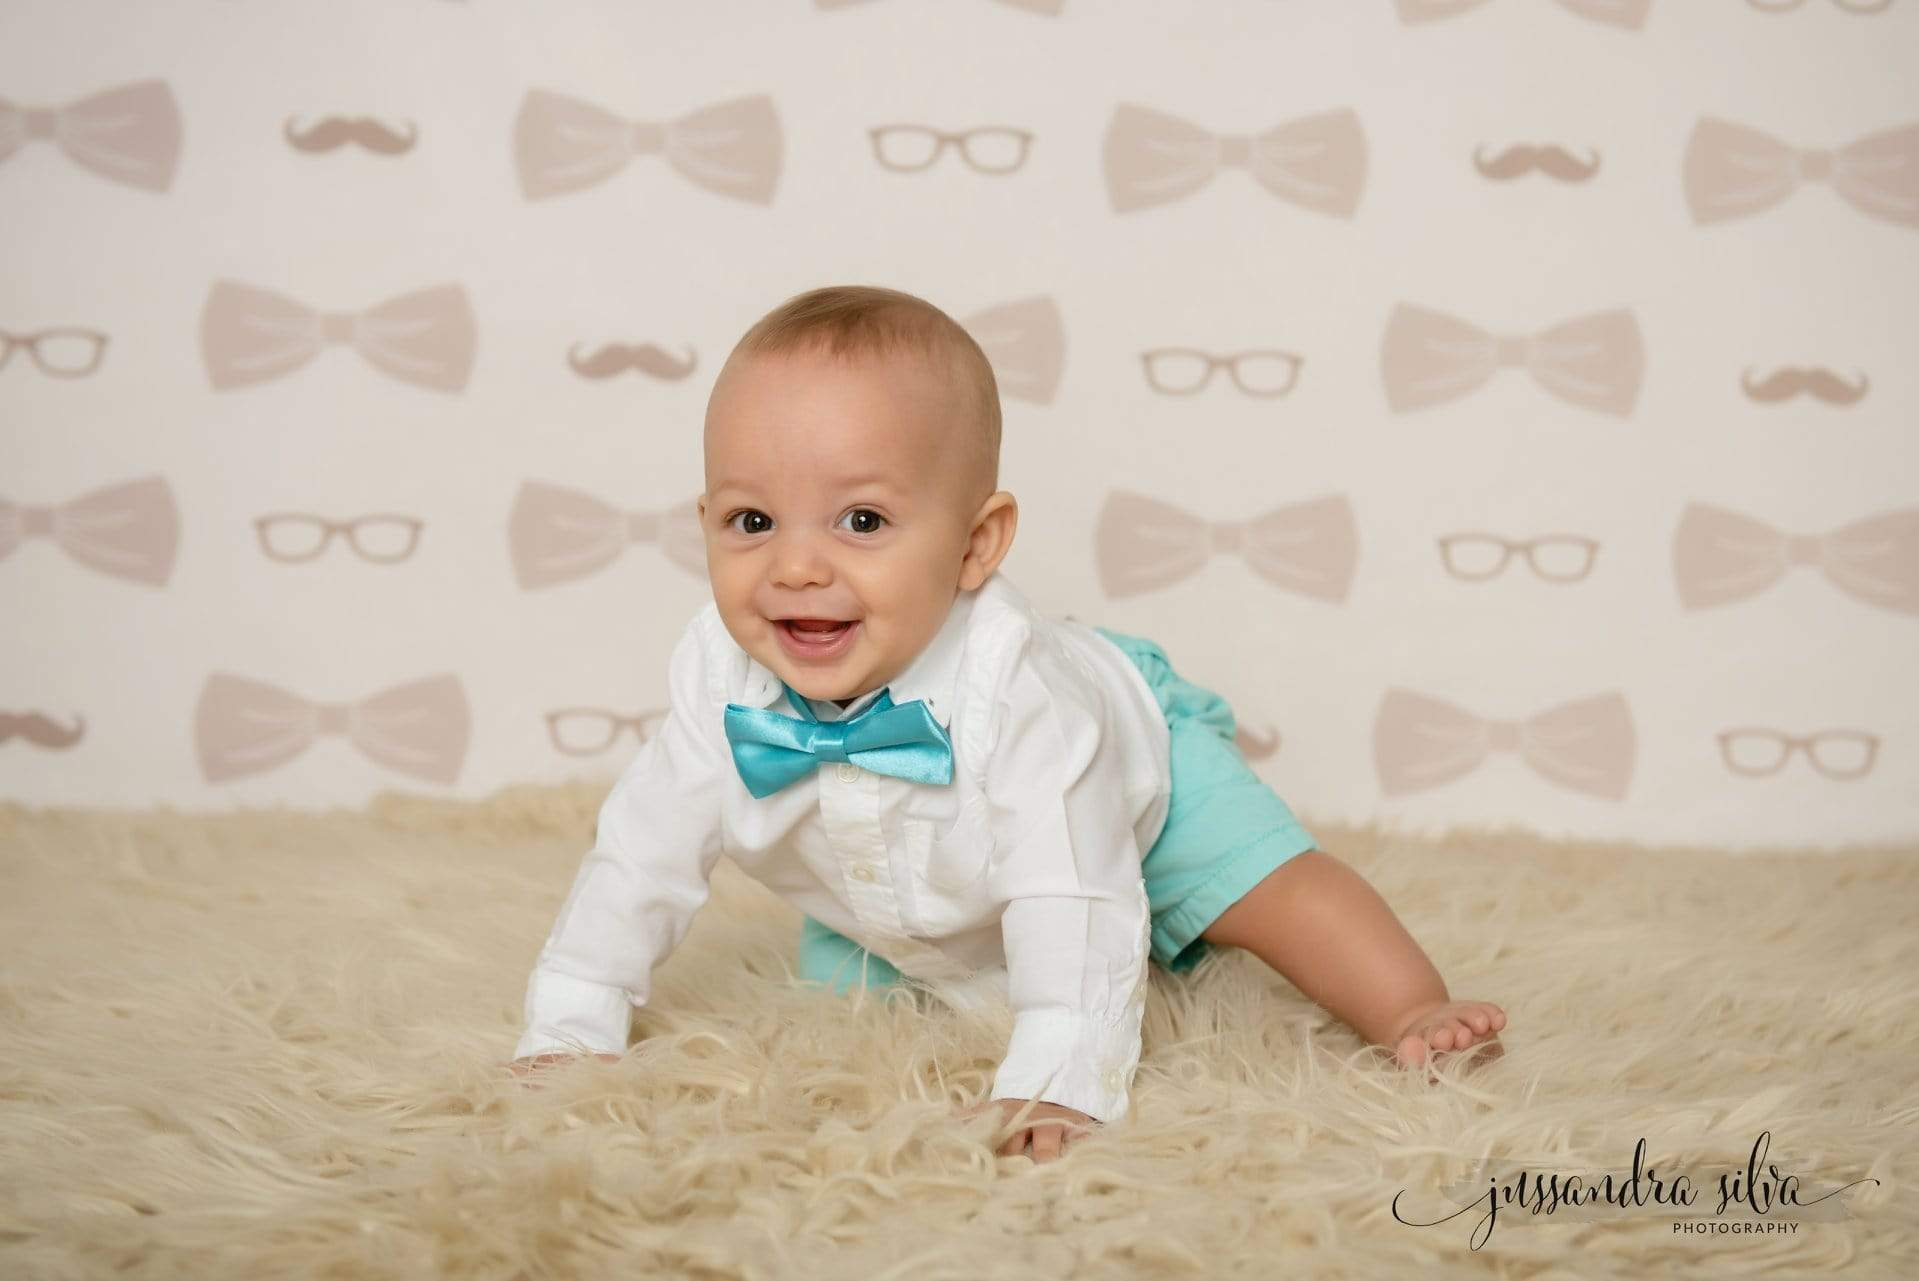 Load image into Gallery viewer, Katebackdrop:Kate Bowties for Little Guys in Brown Father's Day Backdrop for Photography Designed by Amanda Moffatt